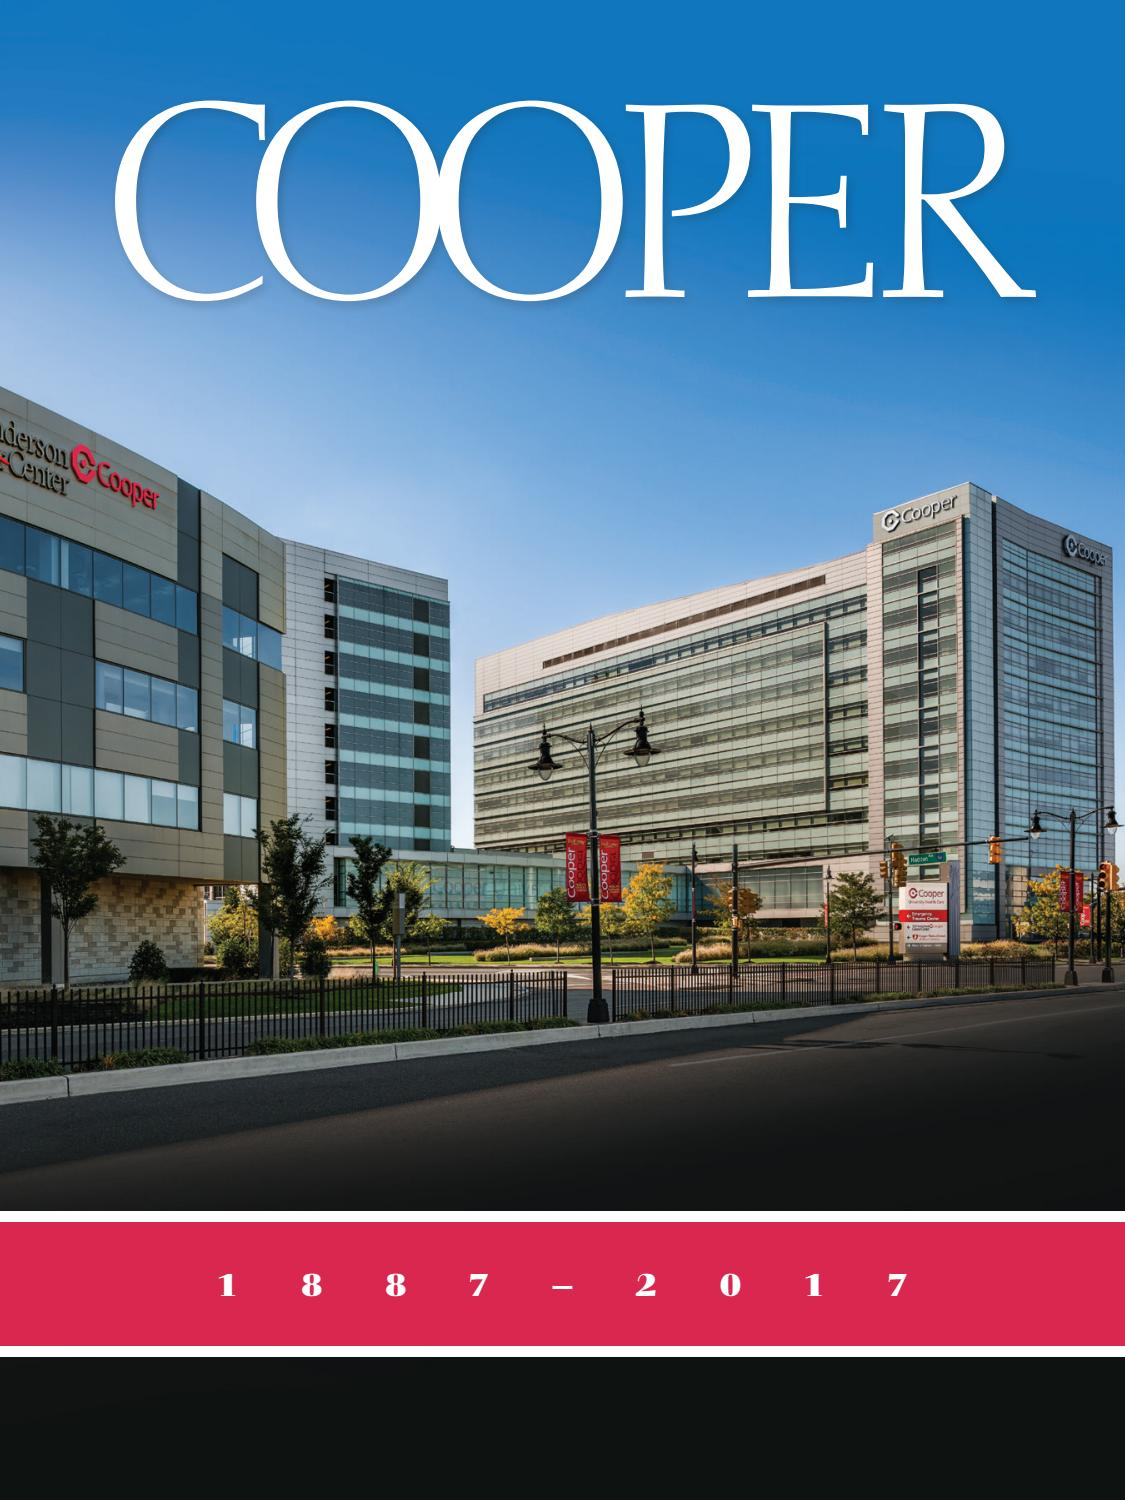 Cooper: The Story of Cooper Hospital 1887 to 2017 by